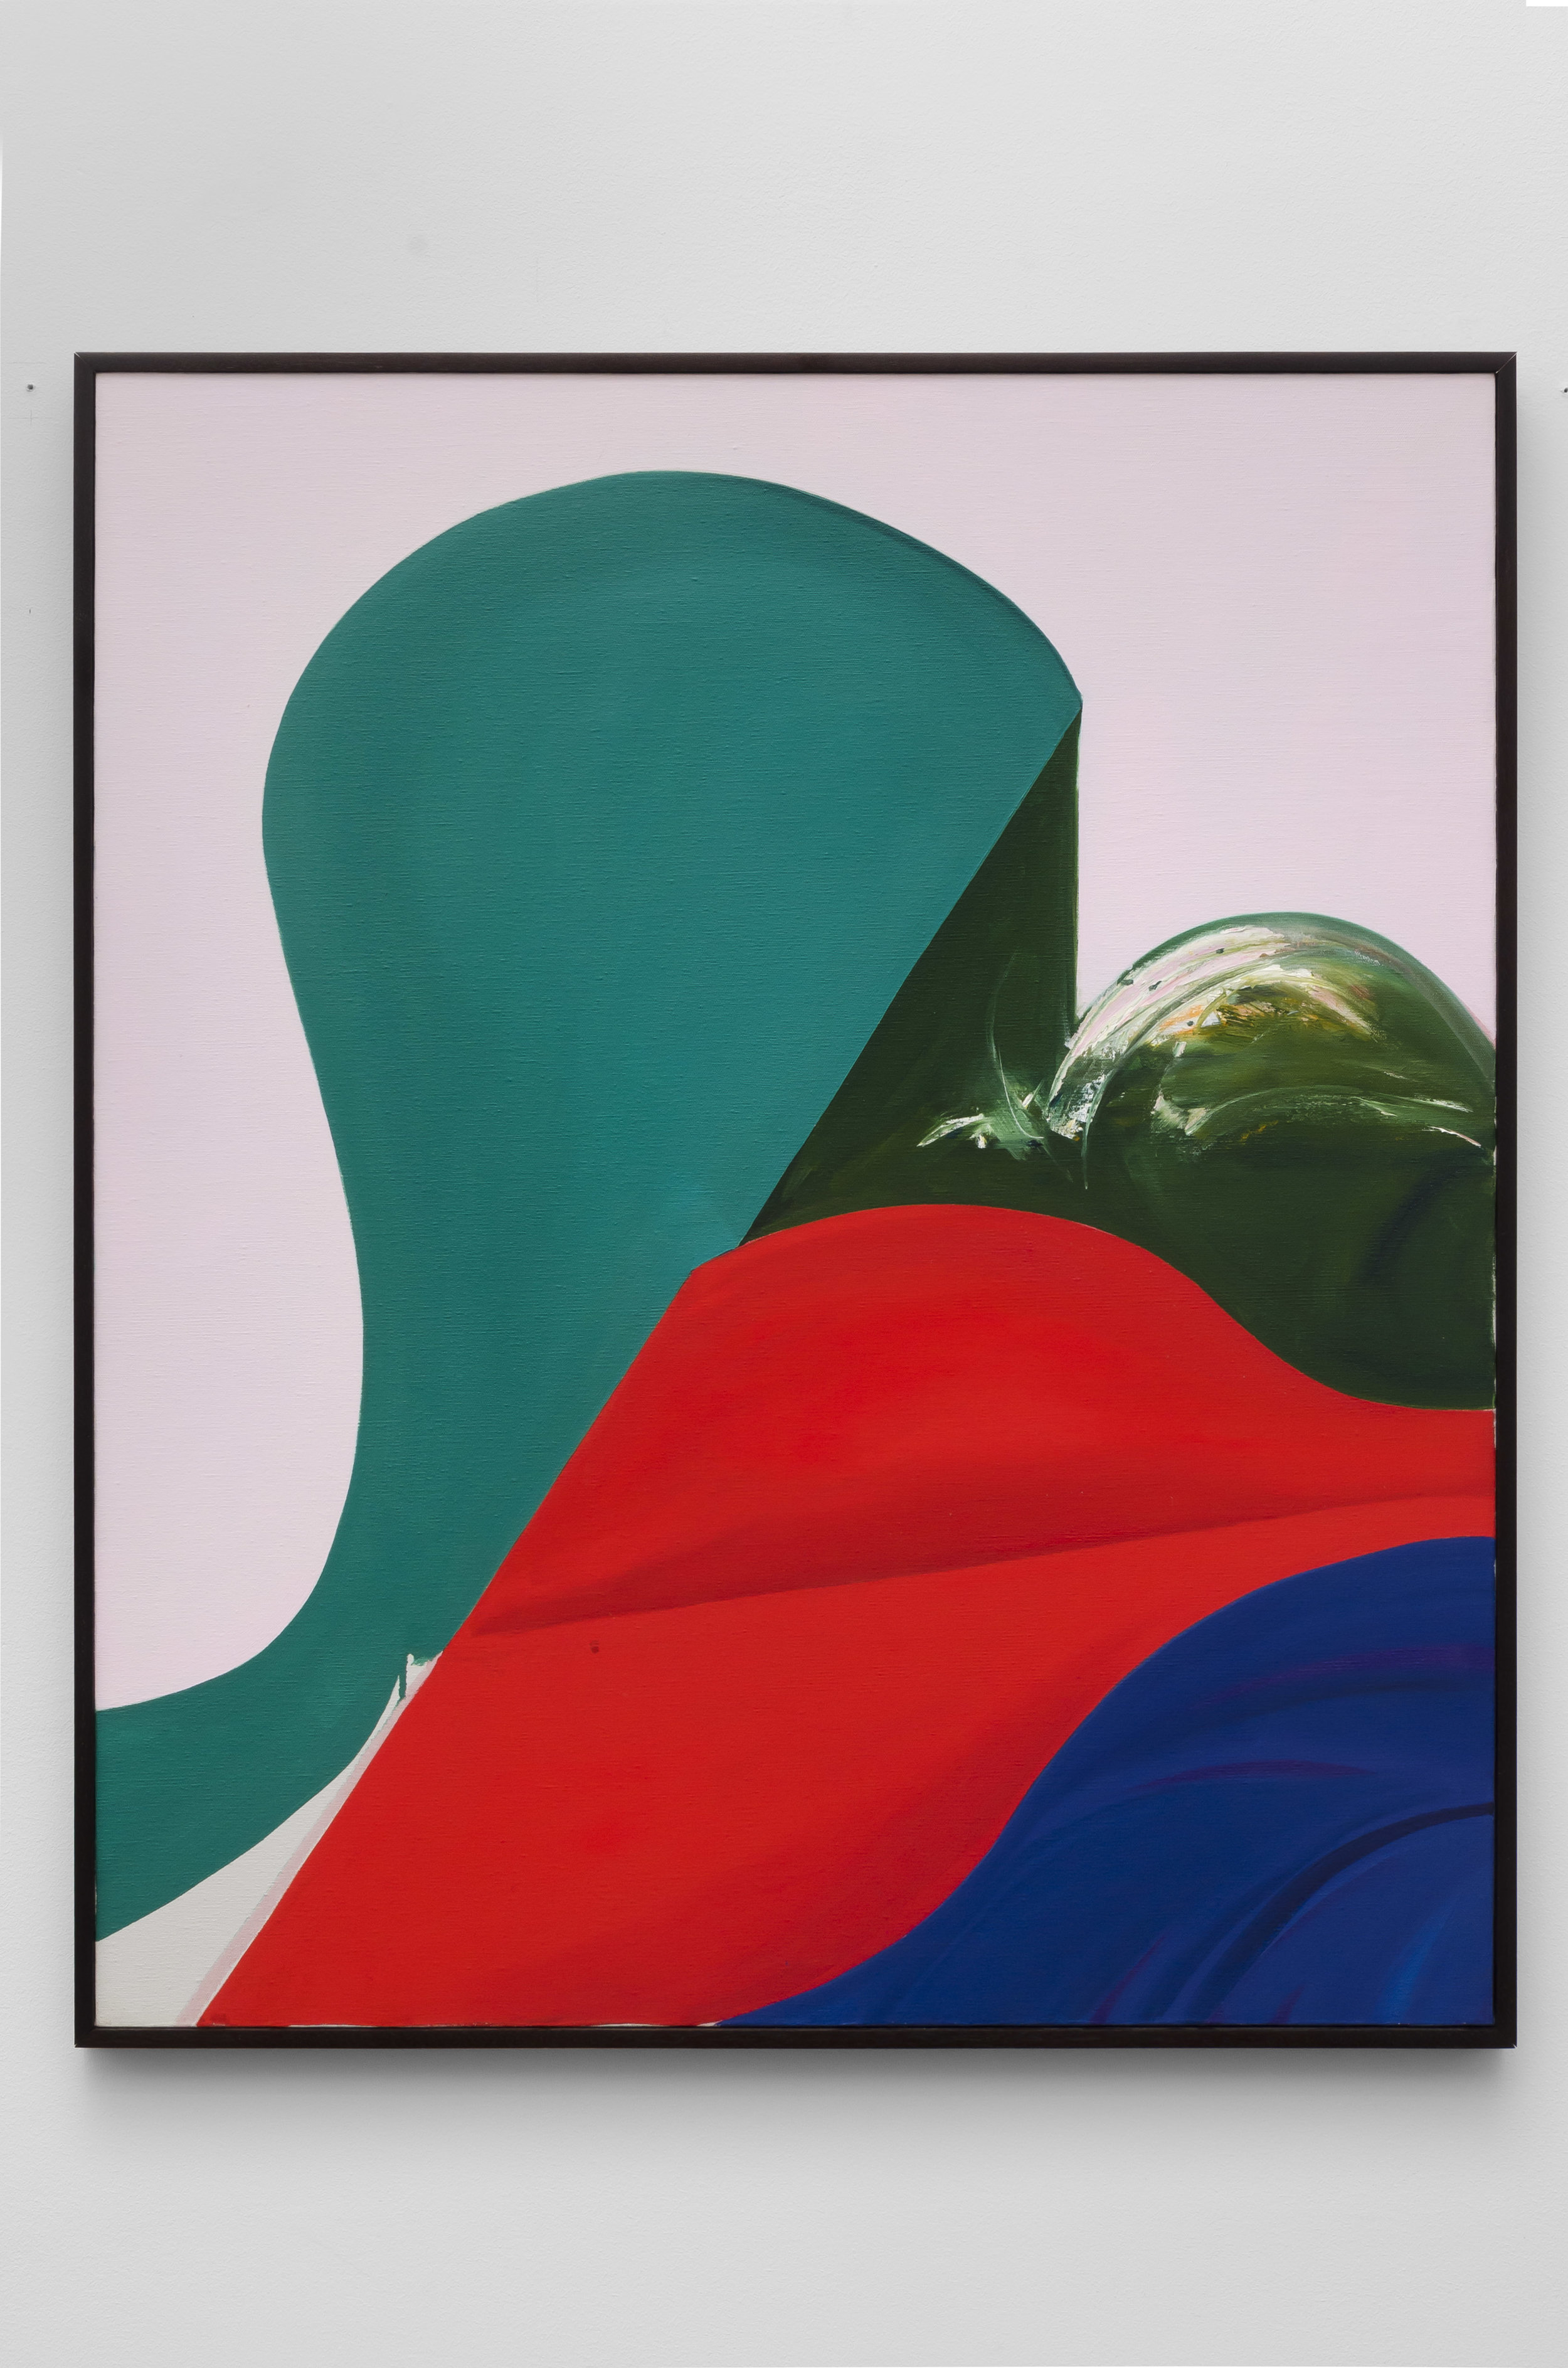 Untitled (C) , 1969 acrylic on canvas 35.75 x 30 inches; 90.8 x 76.2 centimeters